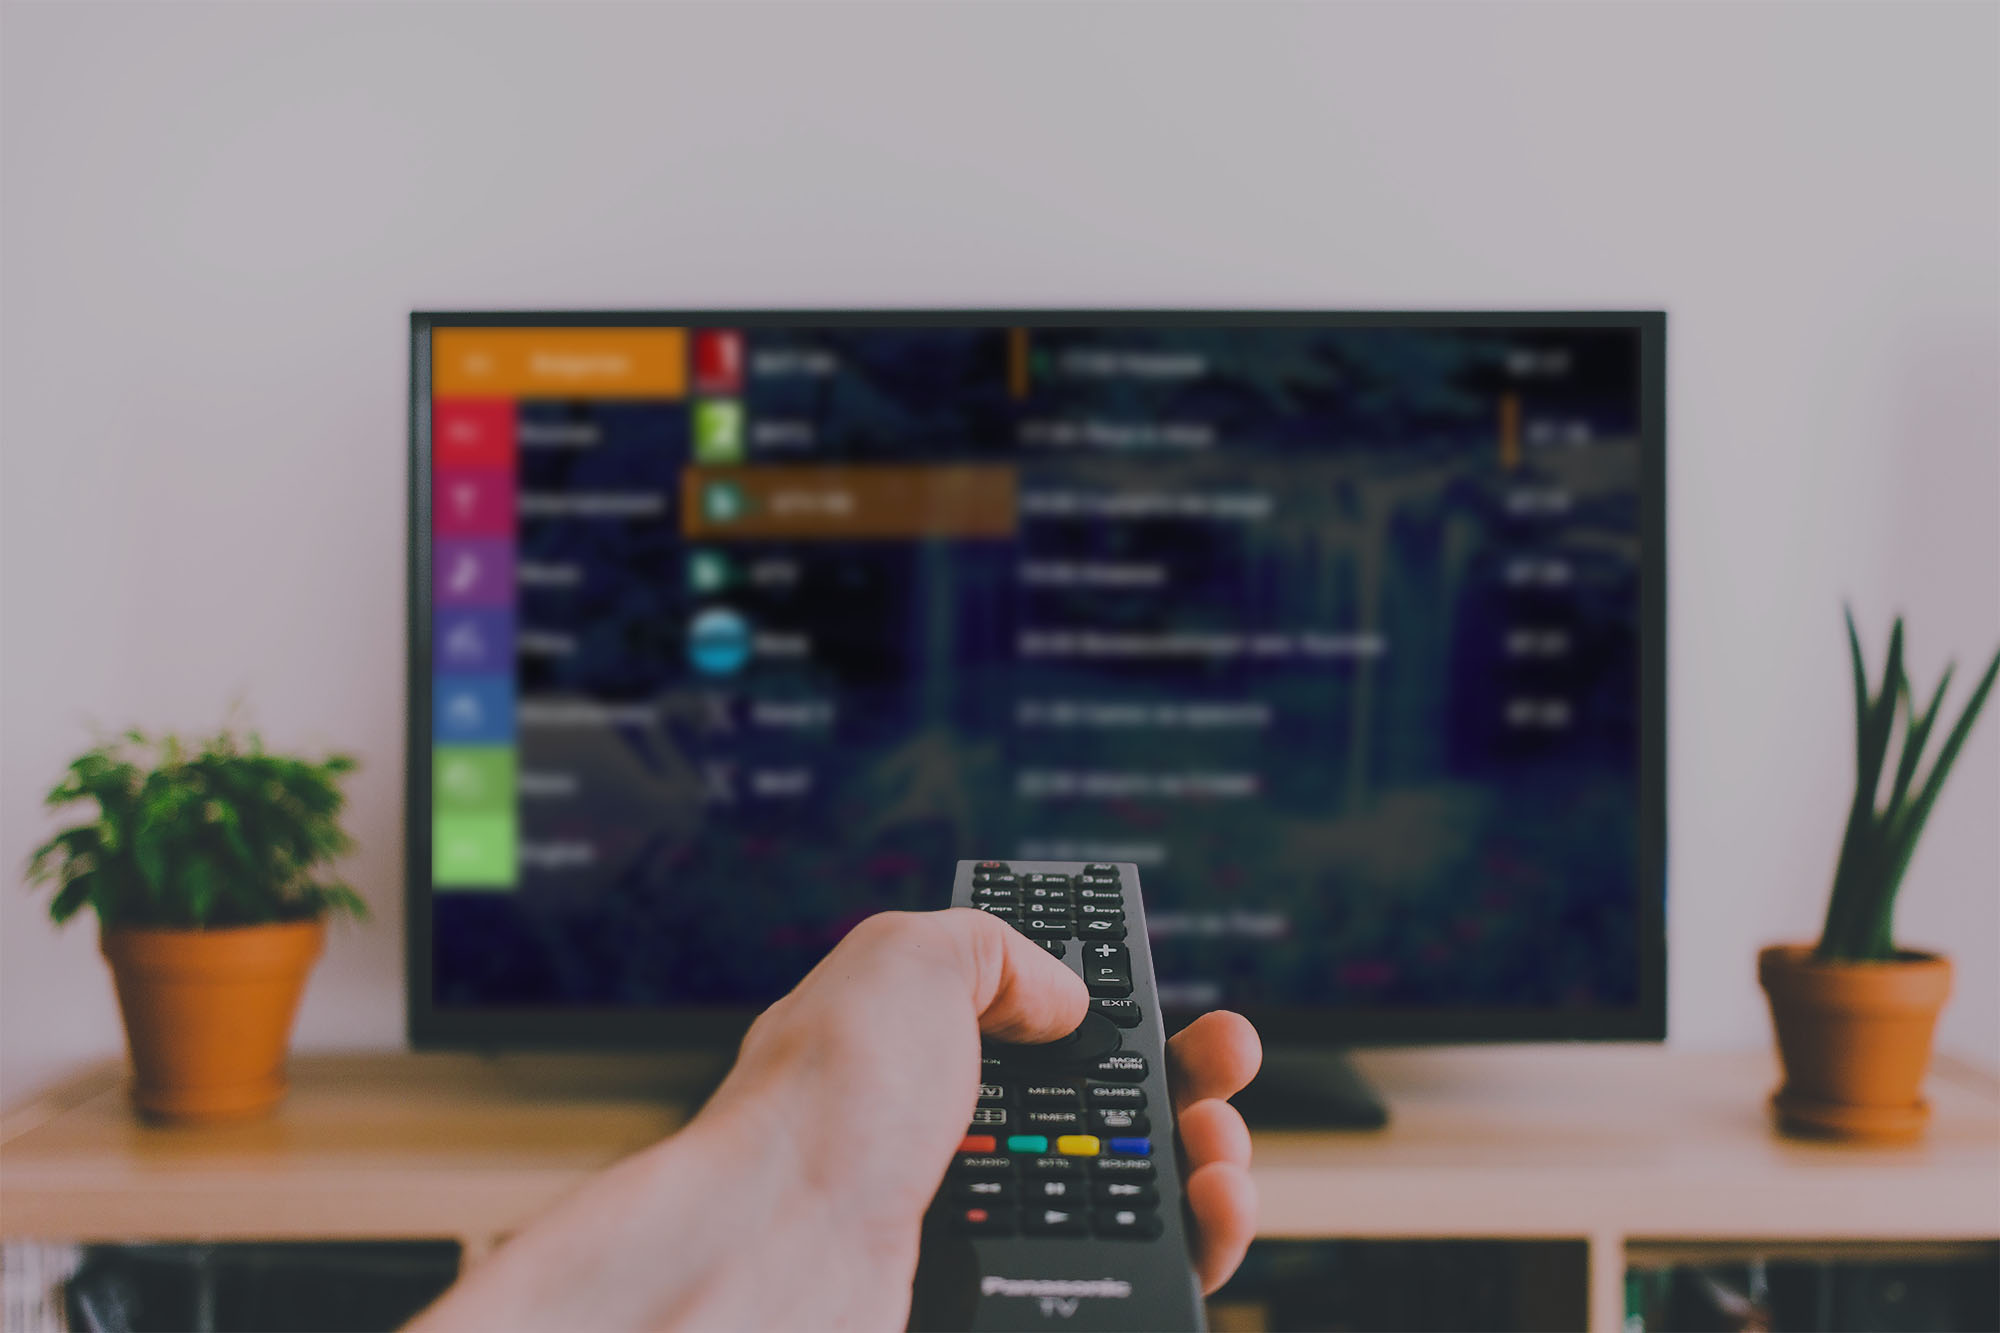 Smart TV apps development